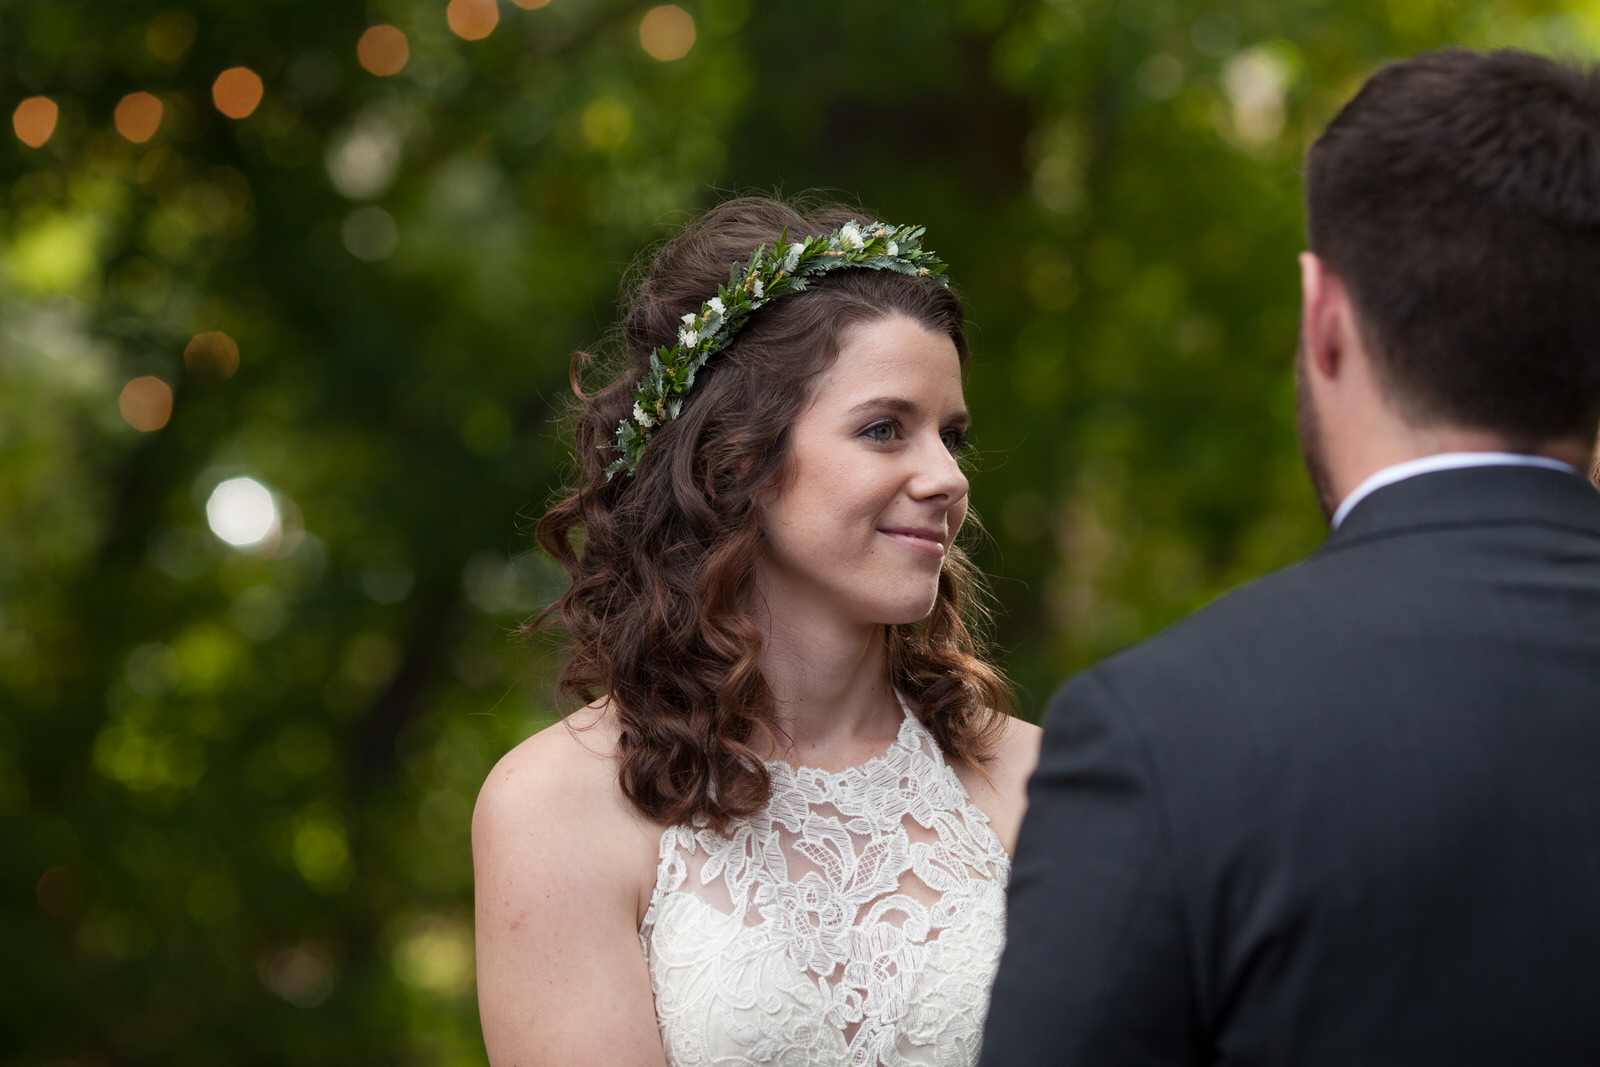 a bride at an outdoor wedding with a flower crown on looking smittenly at the groom